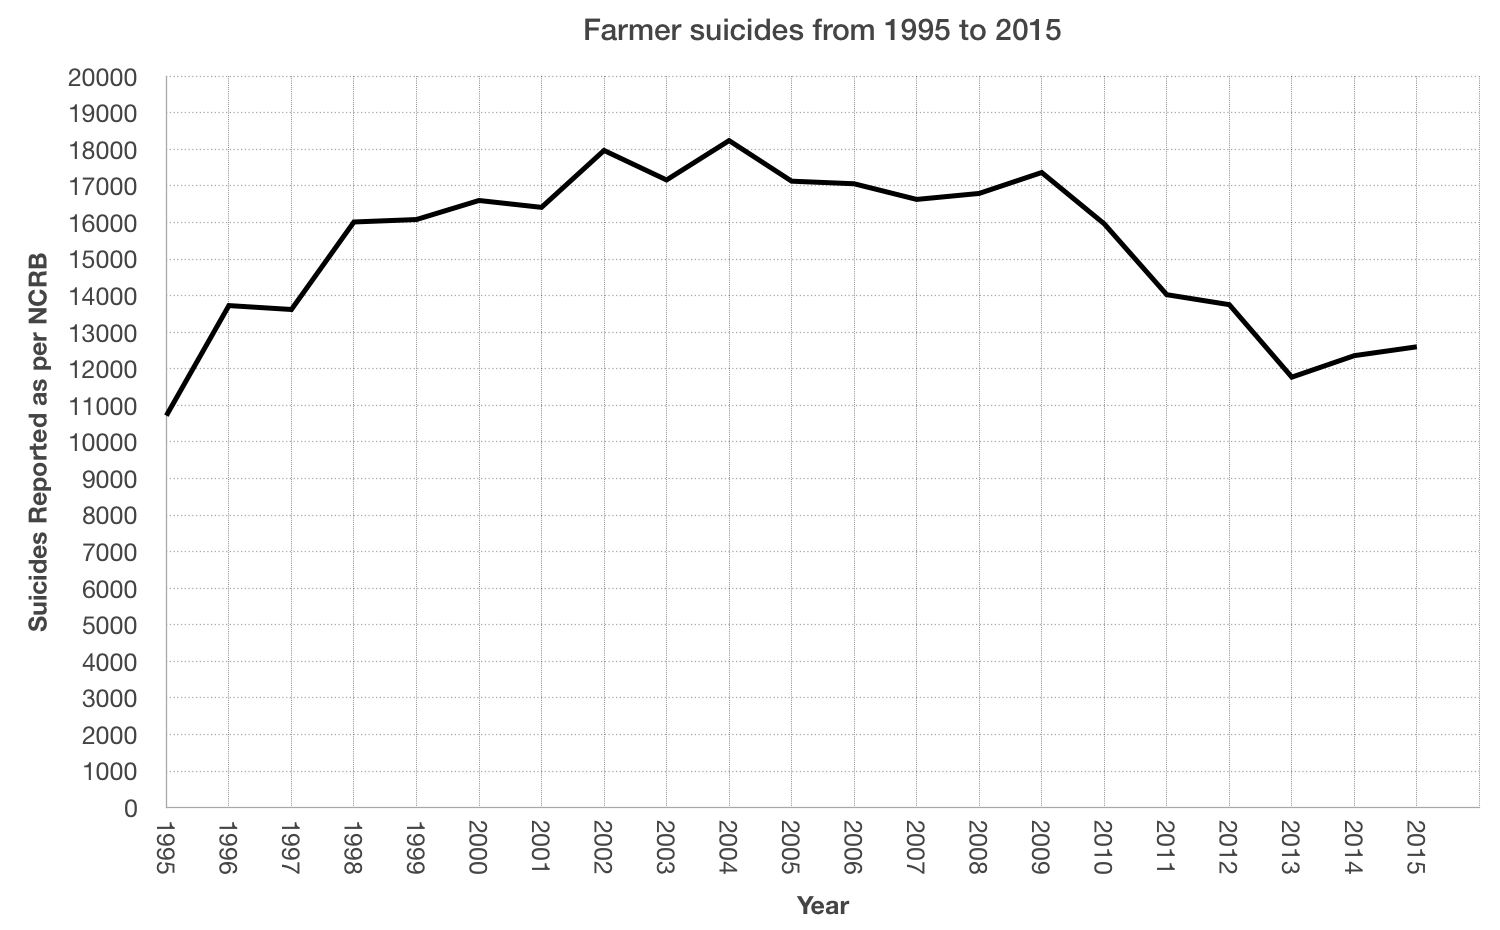 https://upload.wikimedia.org/wikipedia/commons/d/da/Farmer_suicide.png